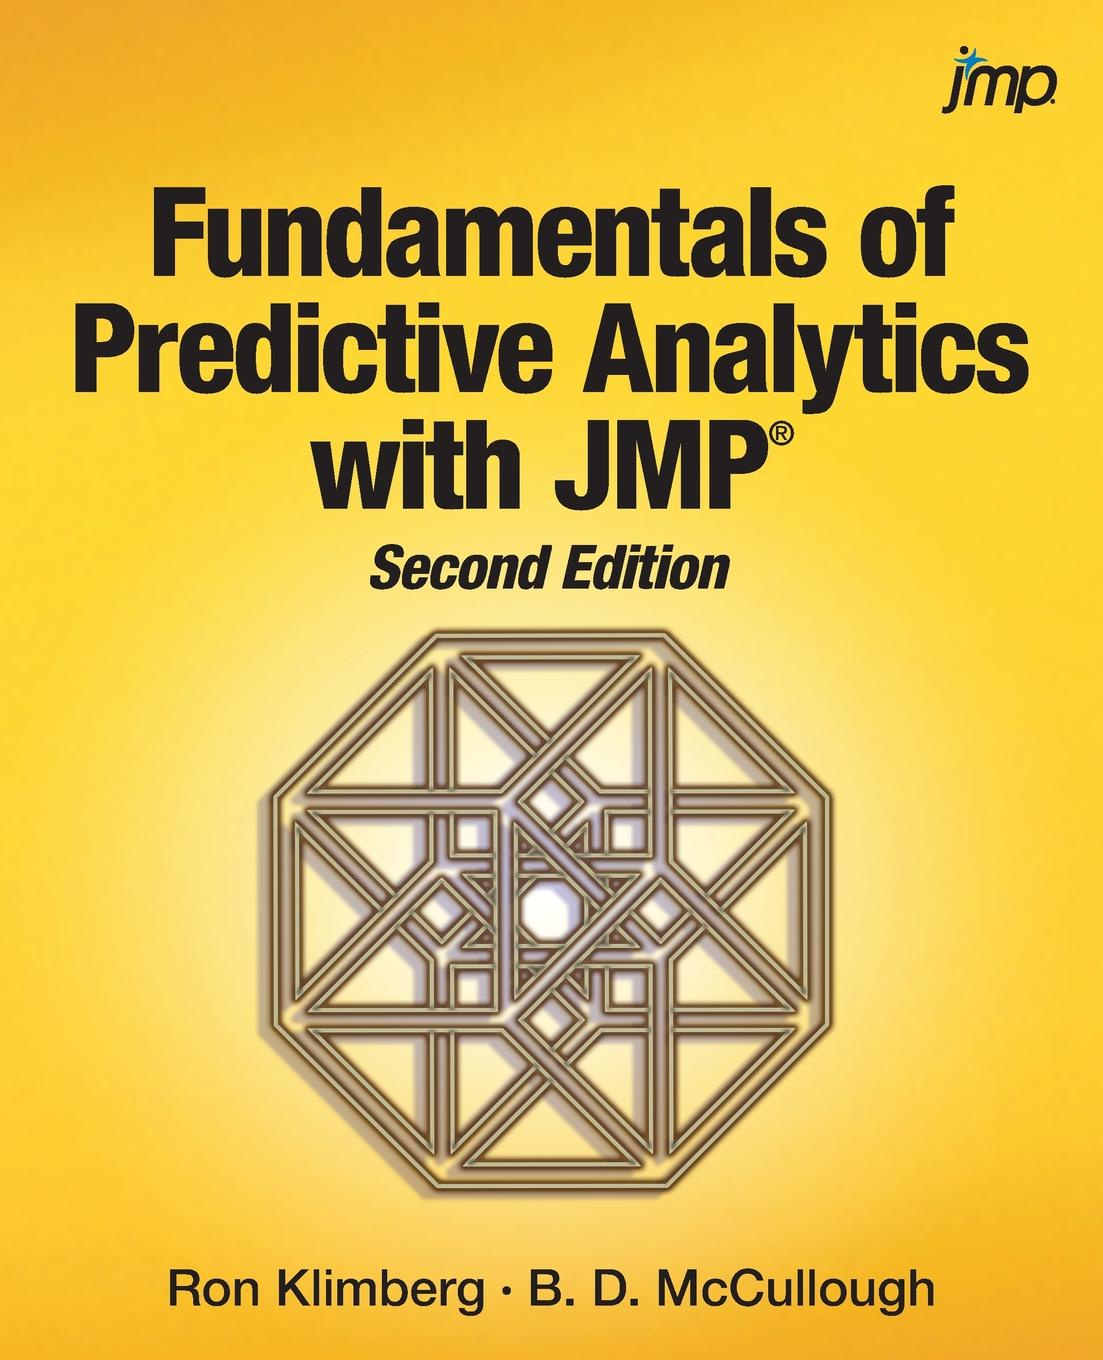 Ron Klimberg, B. D. McCullough Fundamentals of Predictive Analytics with JMP, Second Edition shelemyahu zacks modern industrial statistics with applications in r minitab and jmp